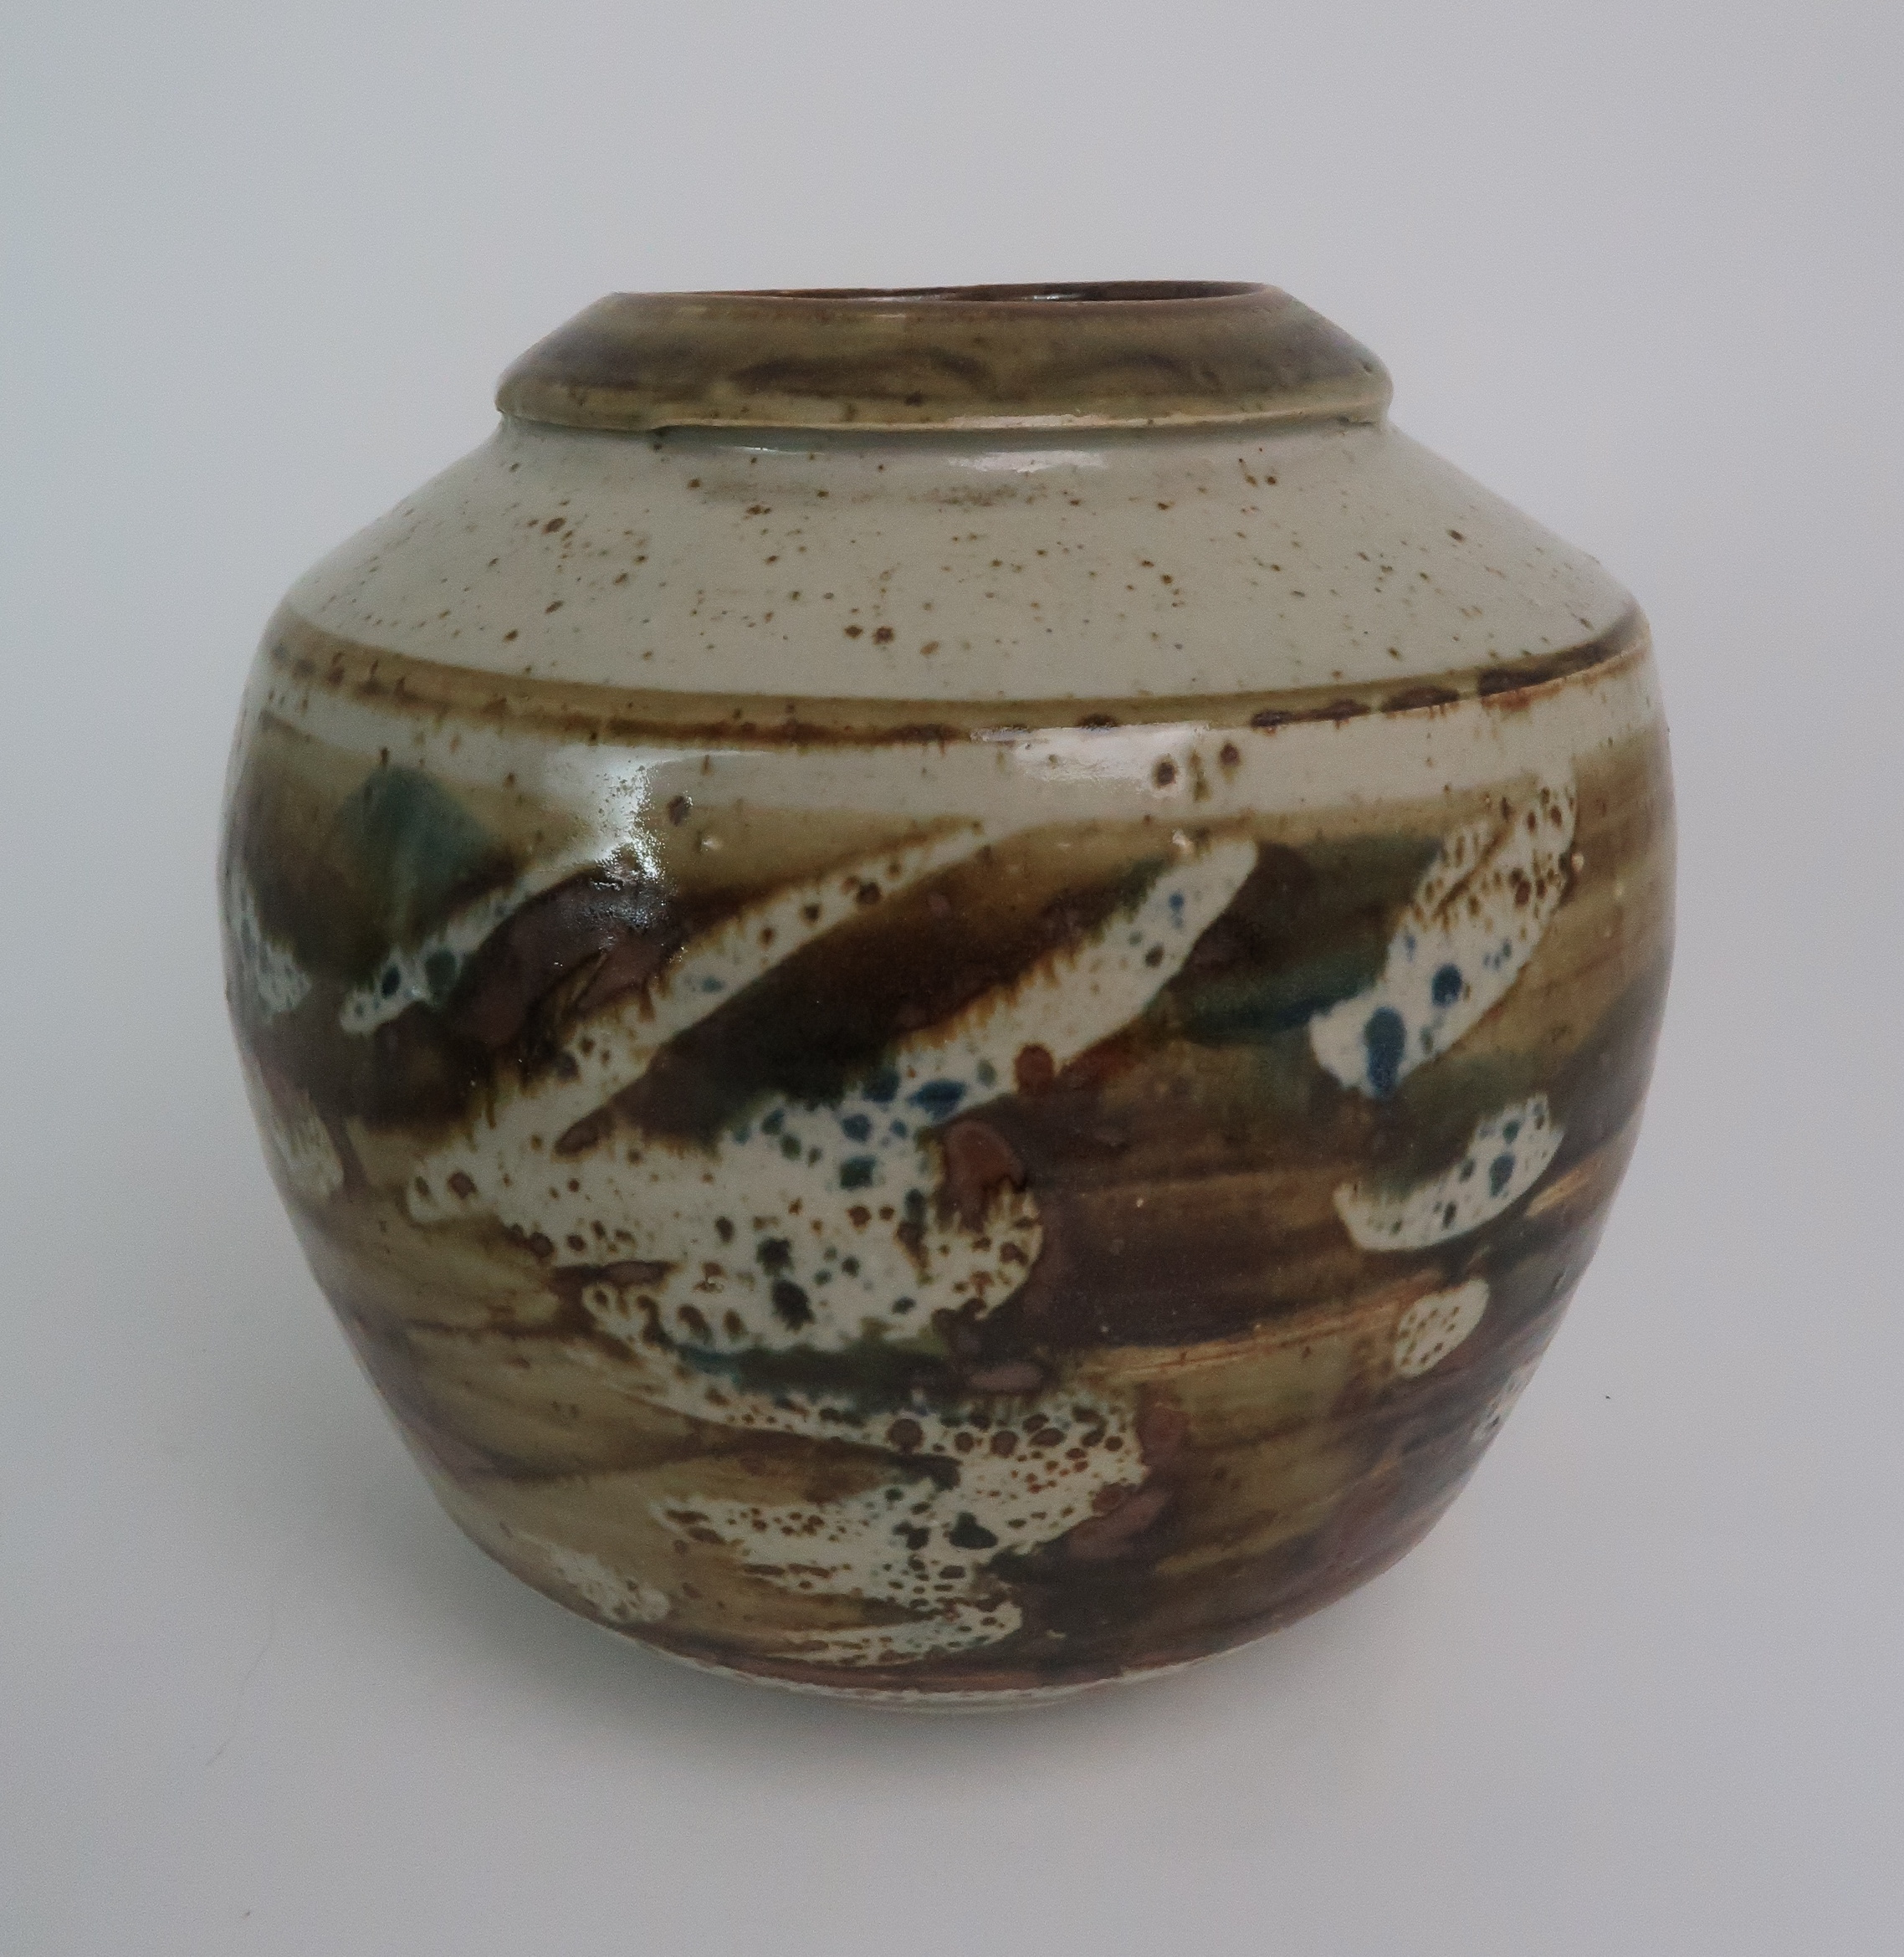 GEORGE SHANKS (1940-2000) - A COLLECTION OF STUDIO POTTERY including a glazed tall vase, 33cm - Image 9 of 15